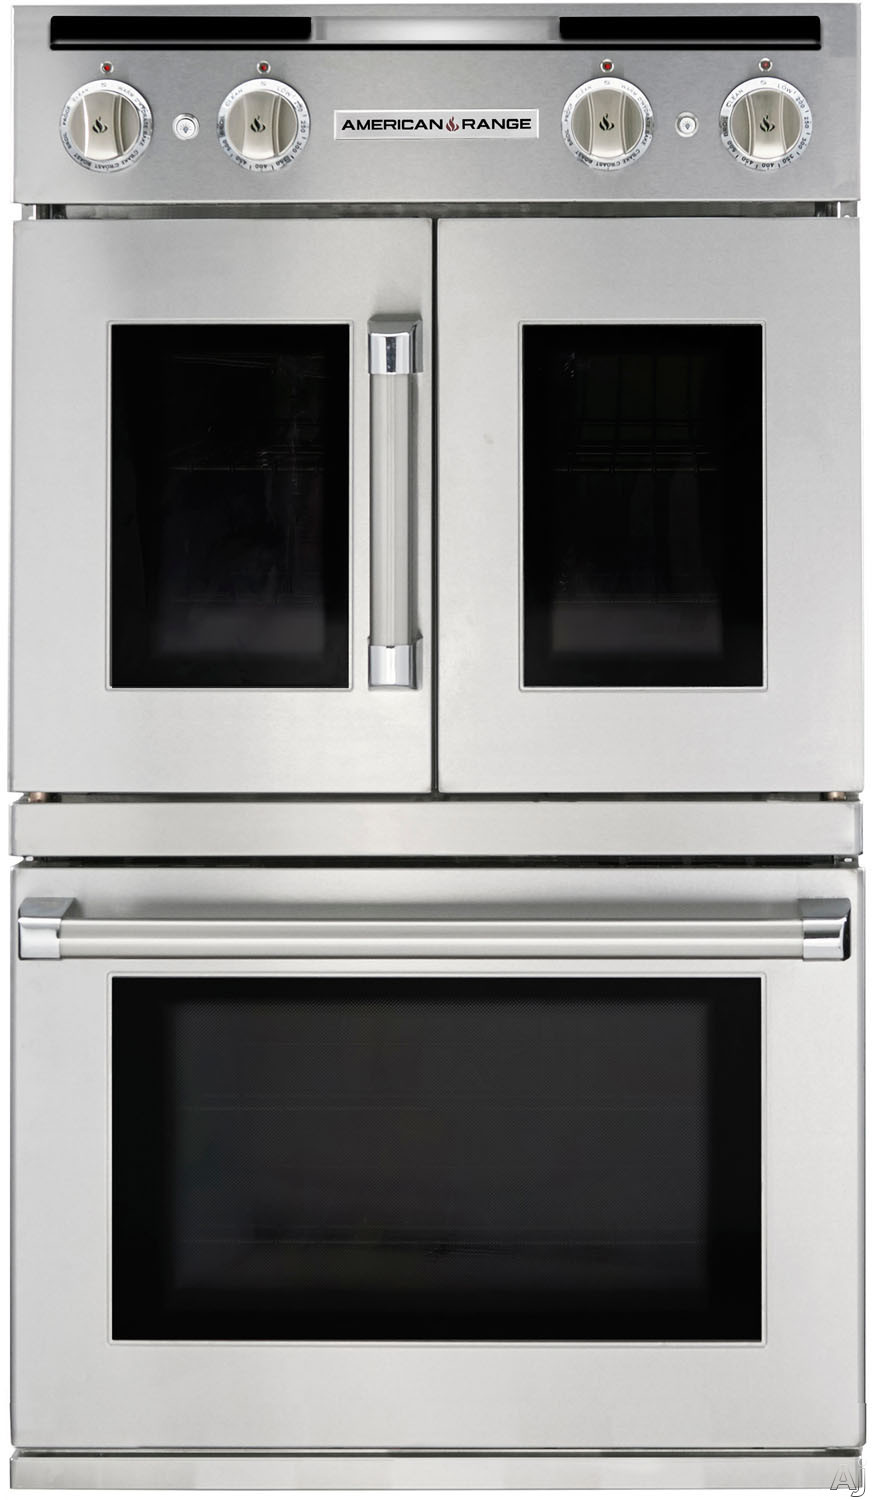 American Range Legacy Series AROFSG230N 30 Inch Double French/Chef Door Gas Wall Oven with 4.7 cu. ft. Capacity, Innovection Convection, Manual Clean, Infrared Broiler, Proofing and Porcelainized Inte